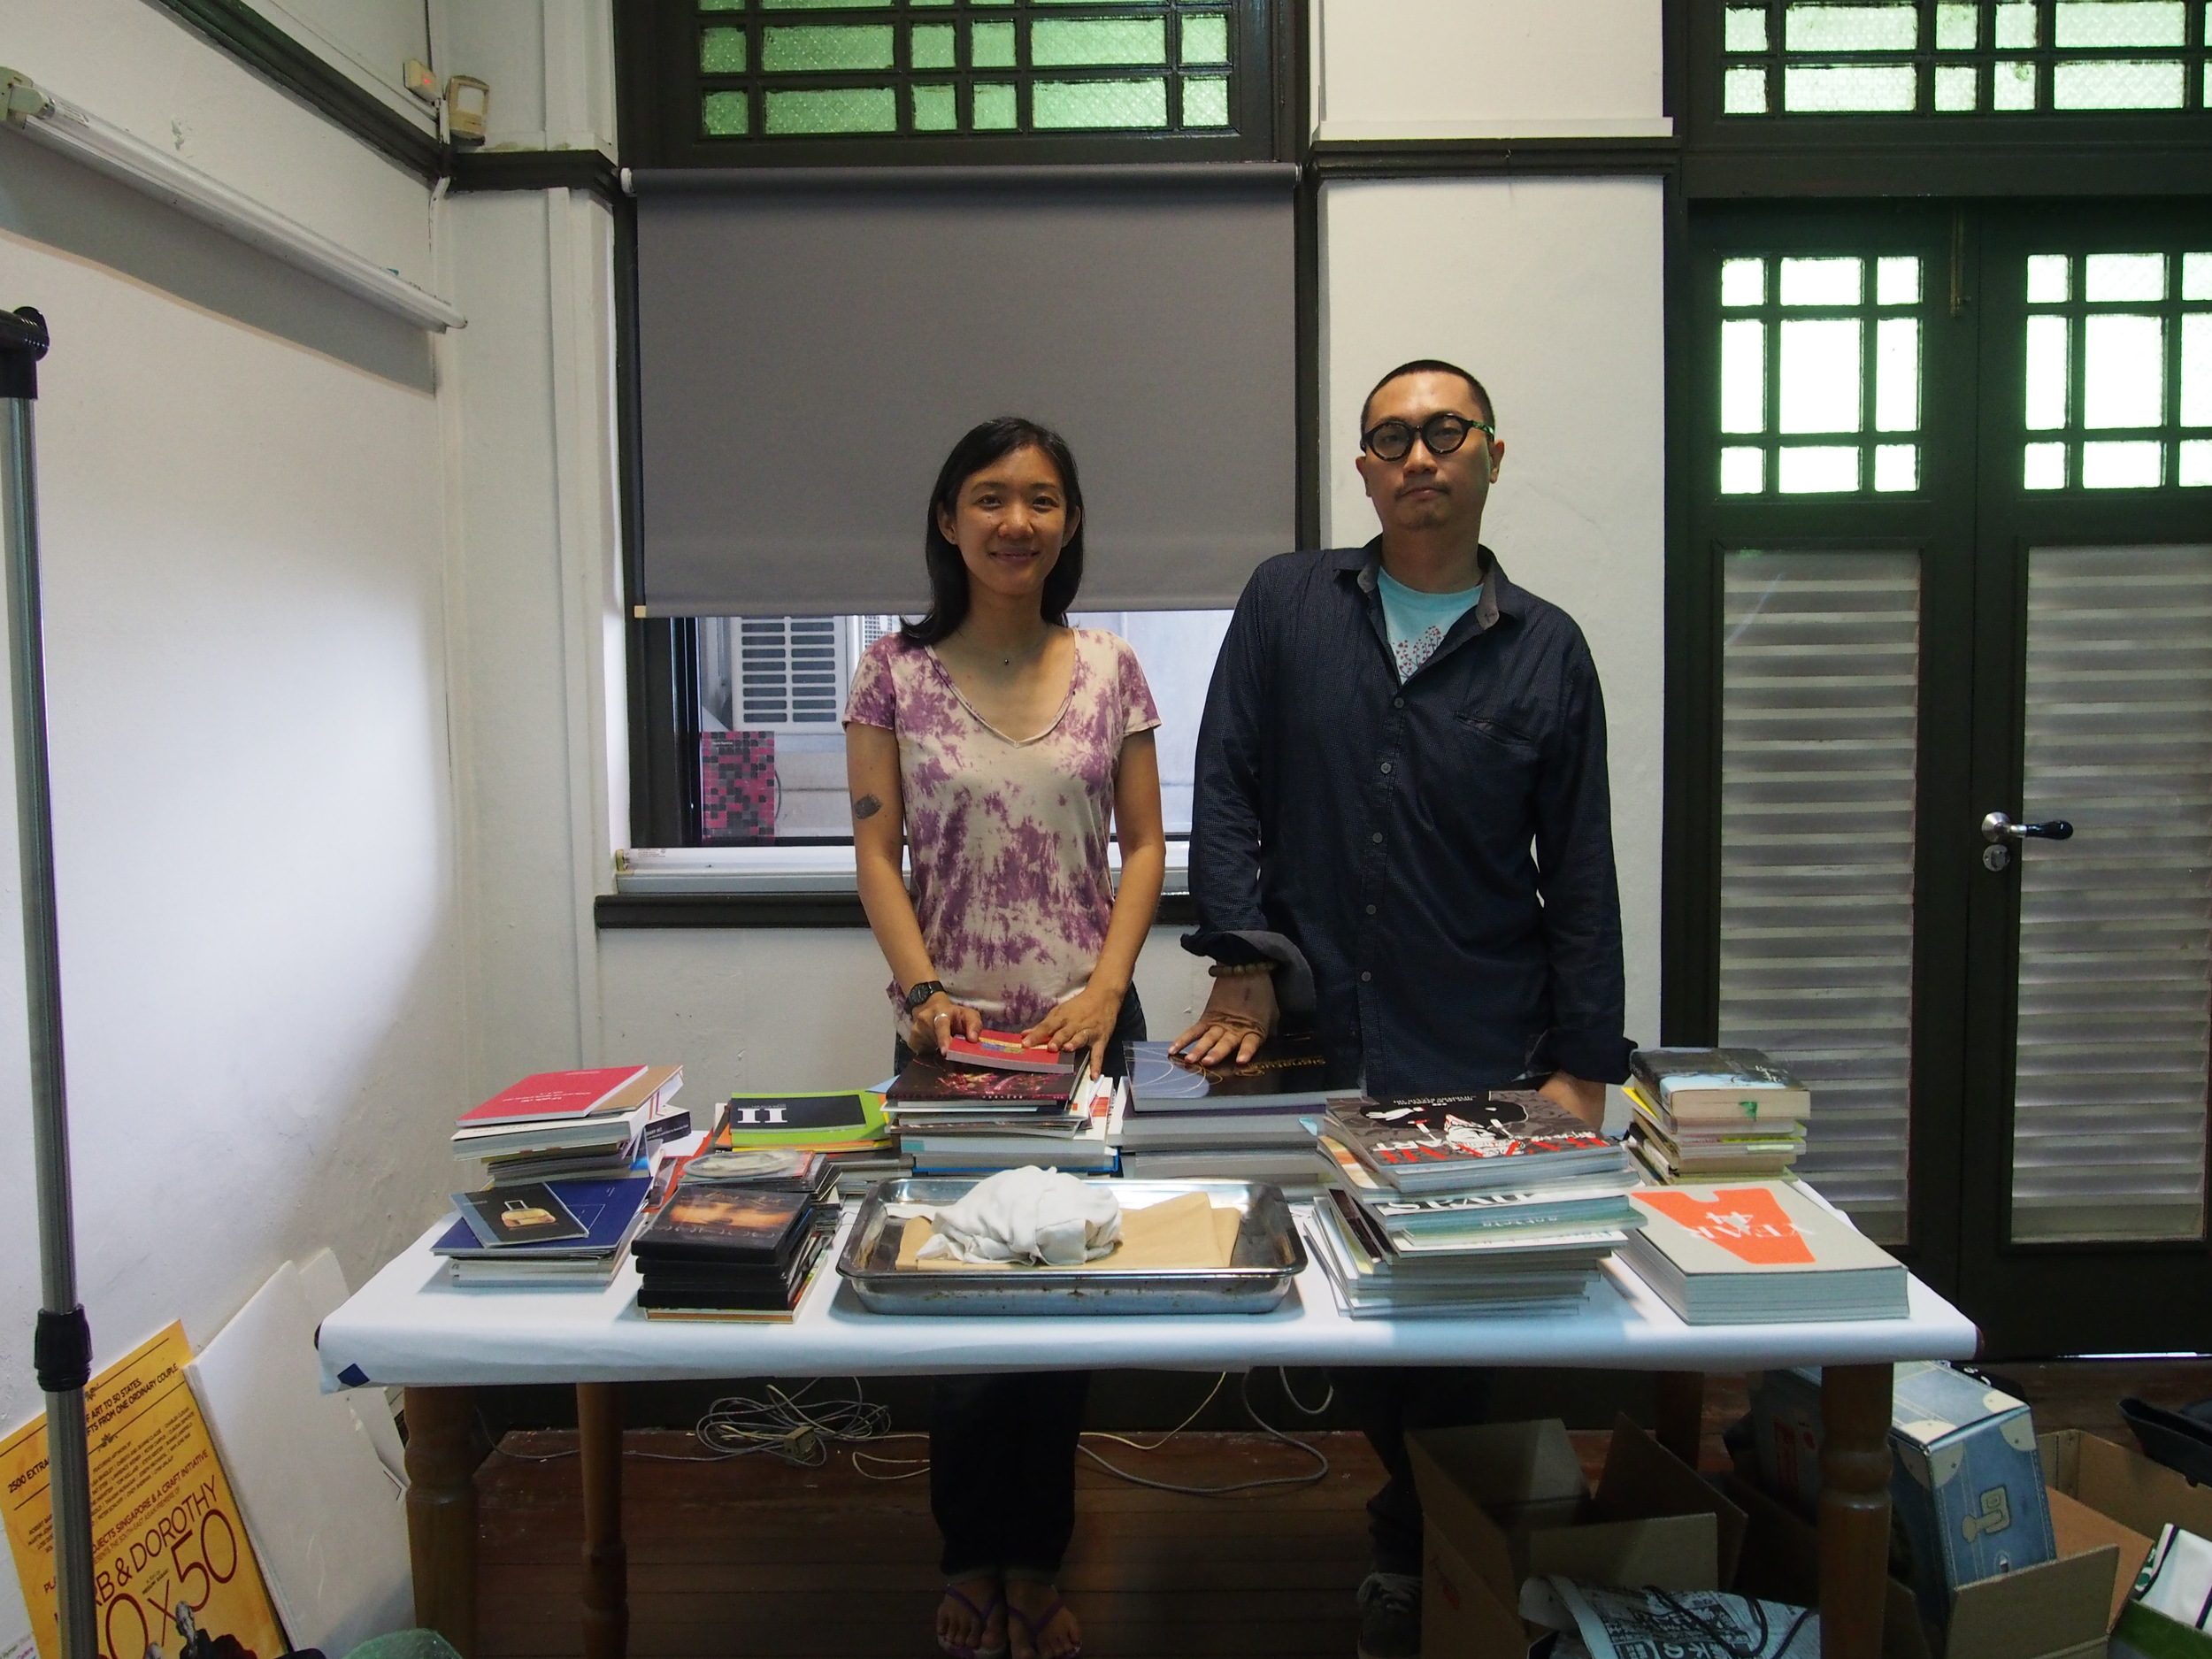 Post-Museum (Jennifer Teo and Woon Tien Wei)